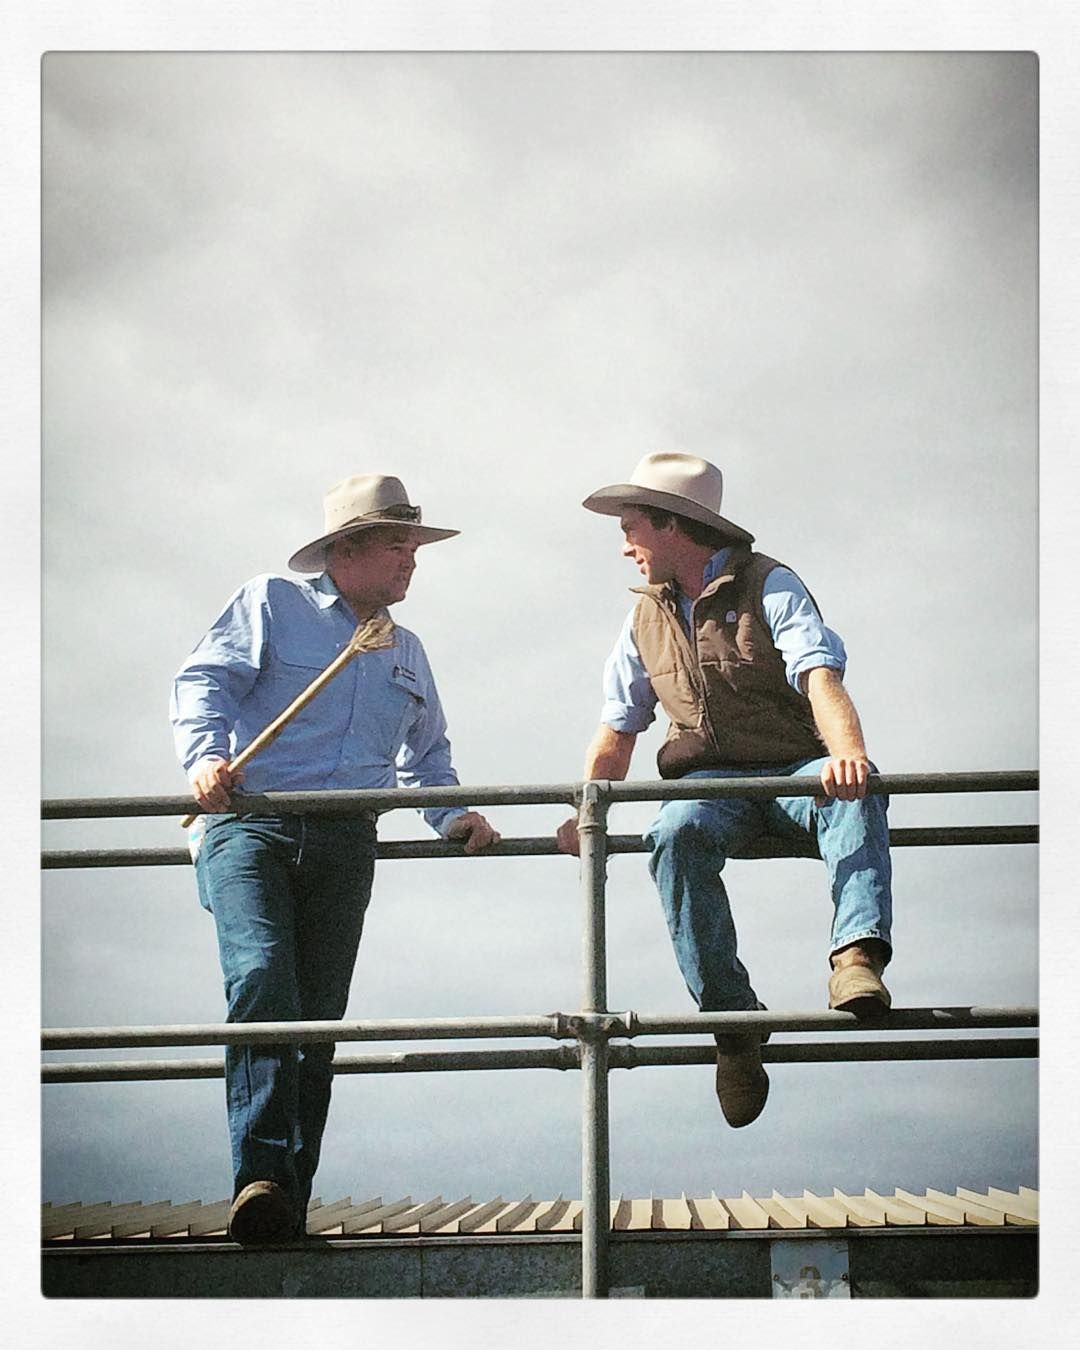 Stock agent talk saleyards cattle Australia